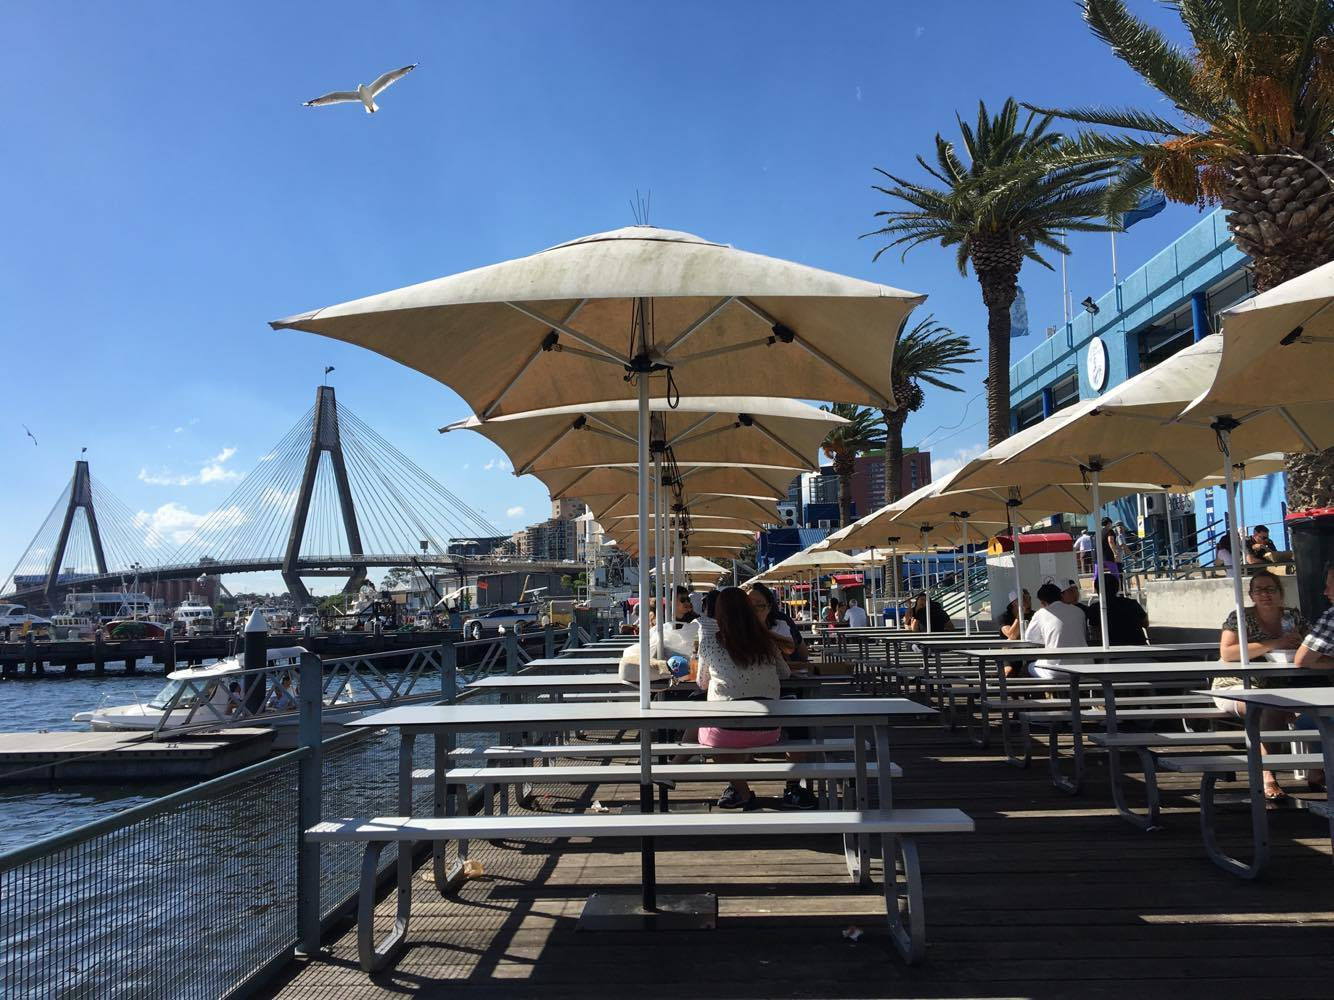 Patio outside Sydney's Fish Market